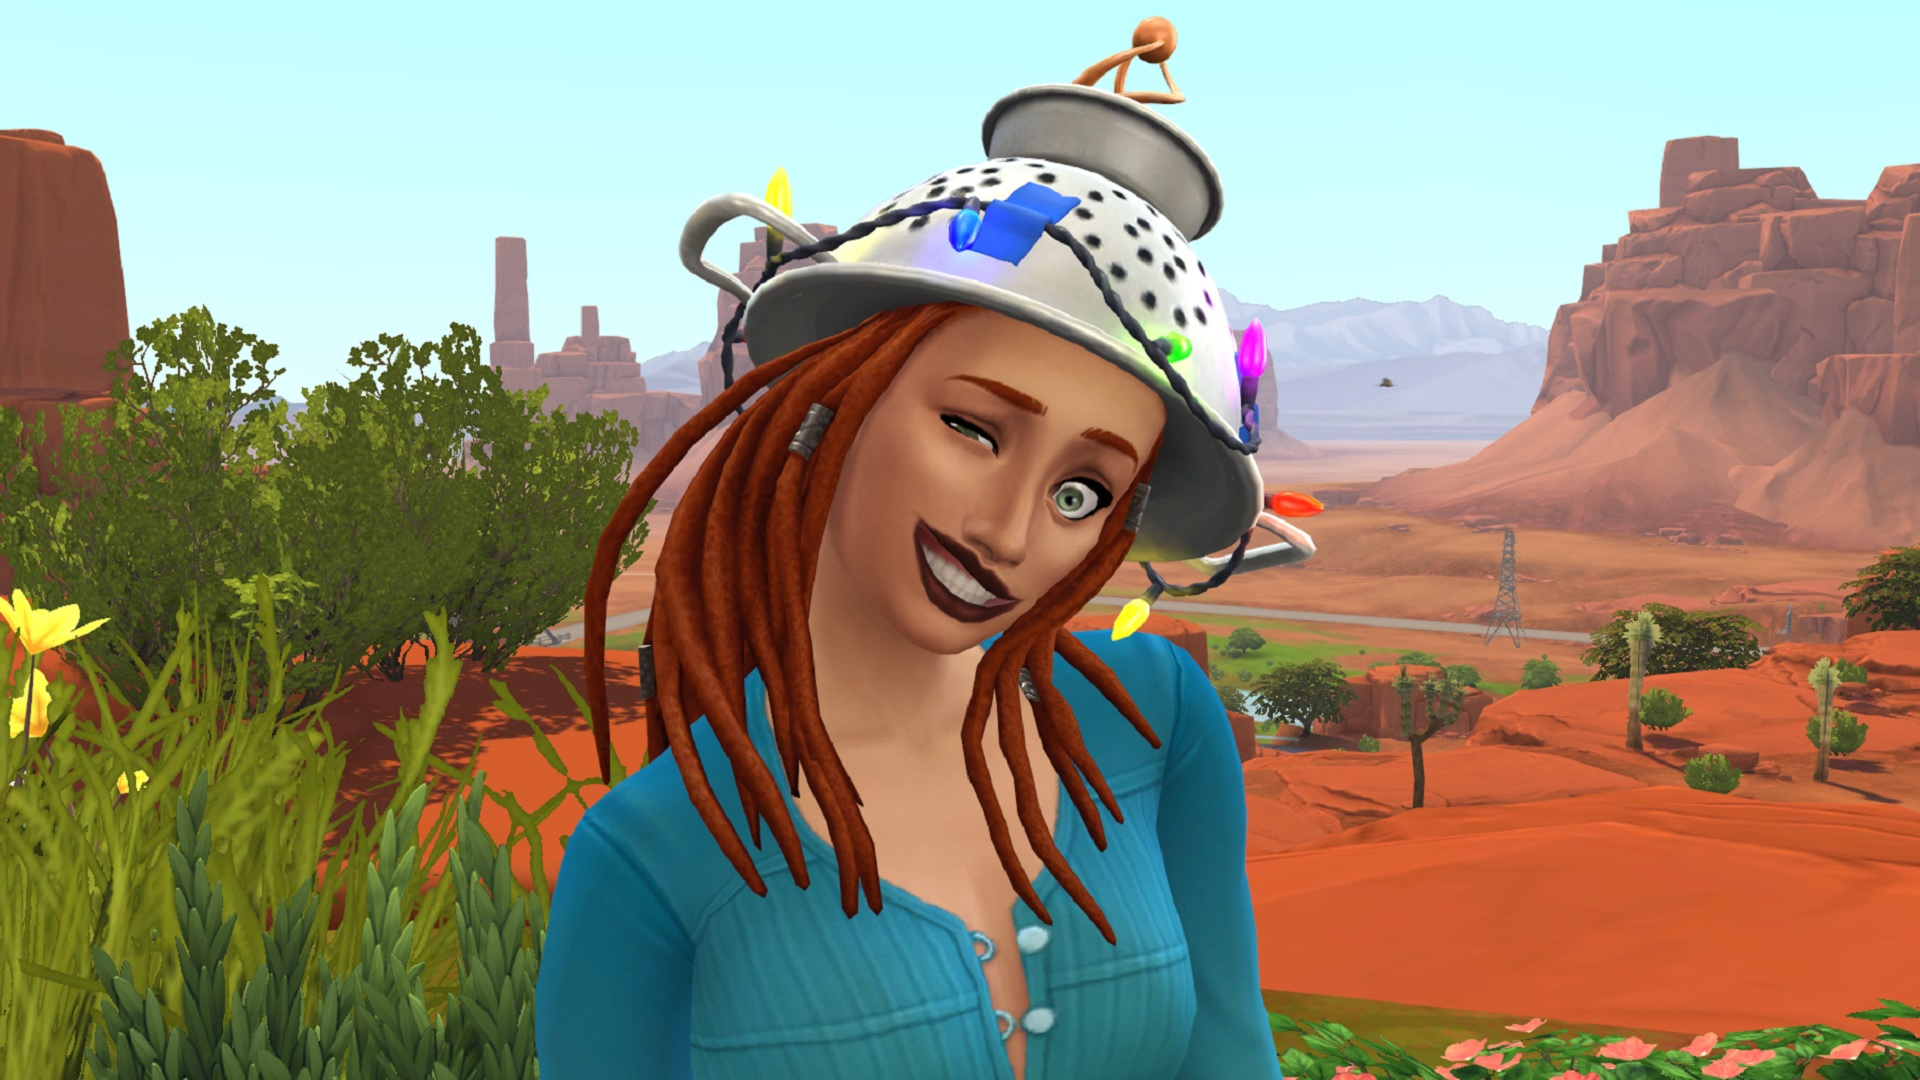 Jak schudnac the sims 4